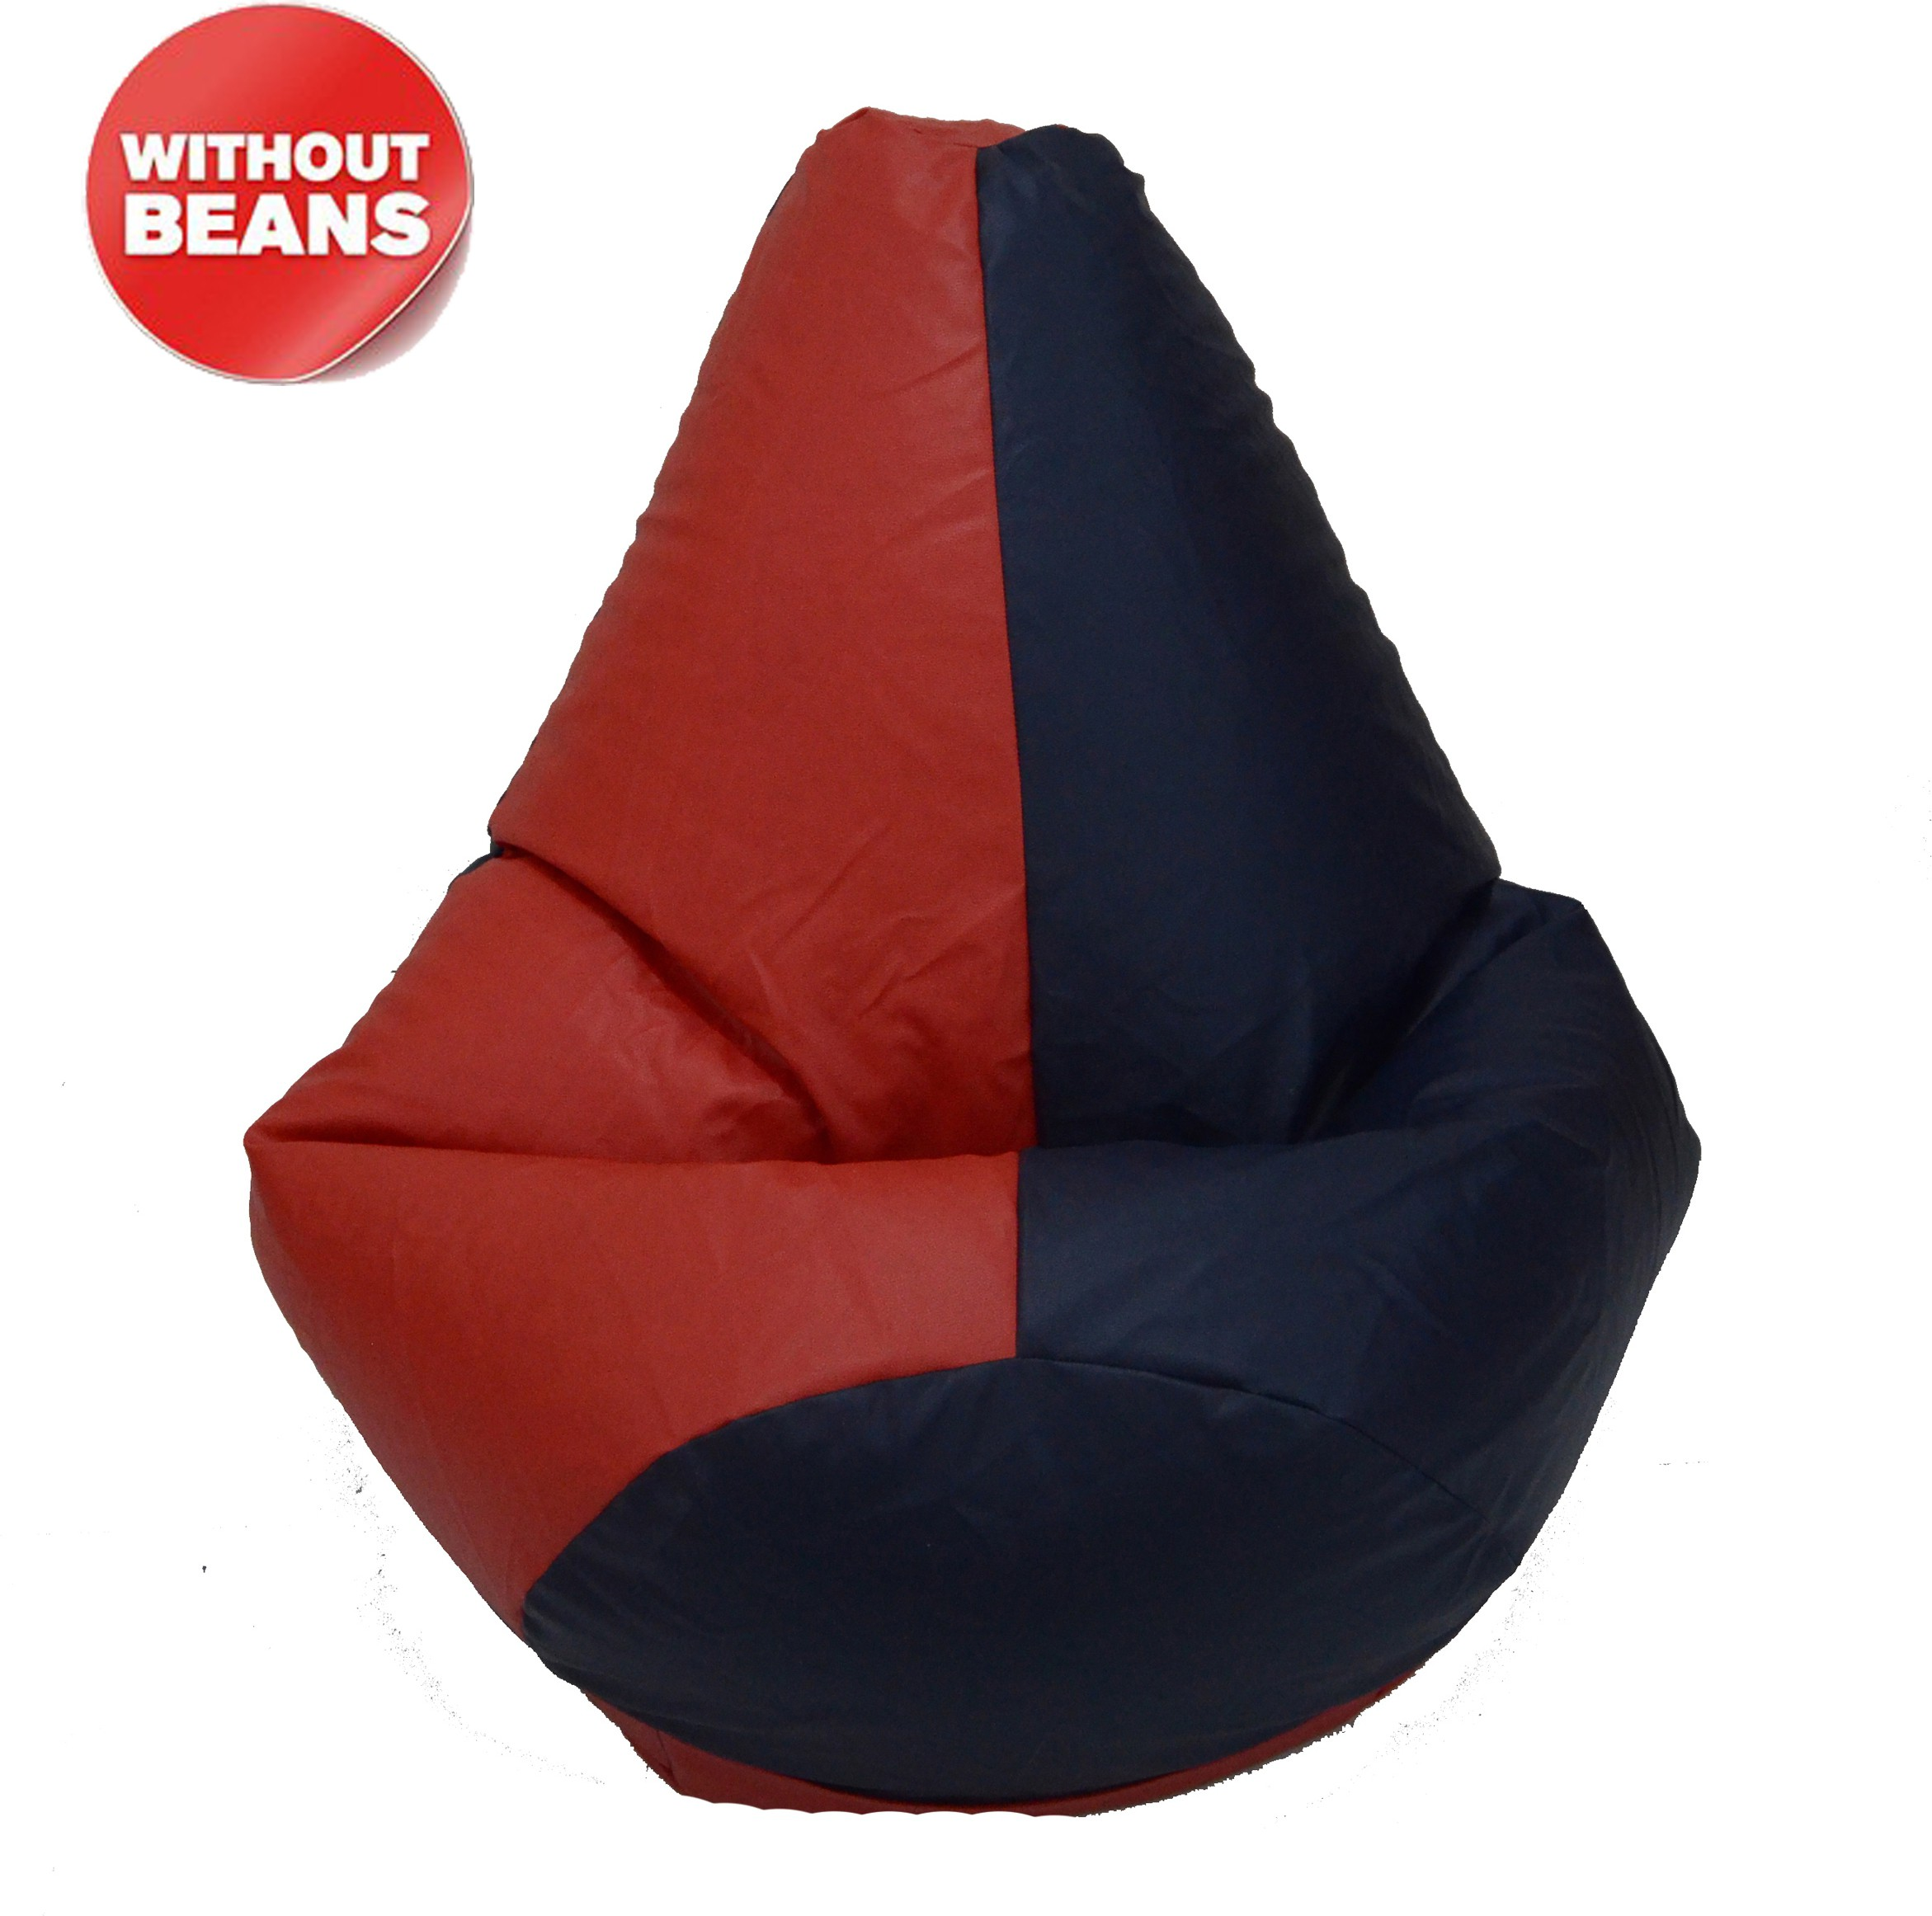 View meSleep XXXL Bean Bag Cover(Multicolor) Furniture (meSleep)